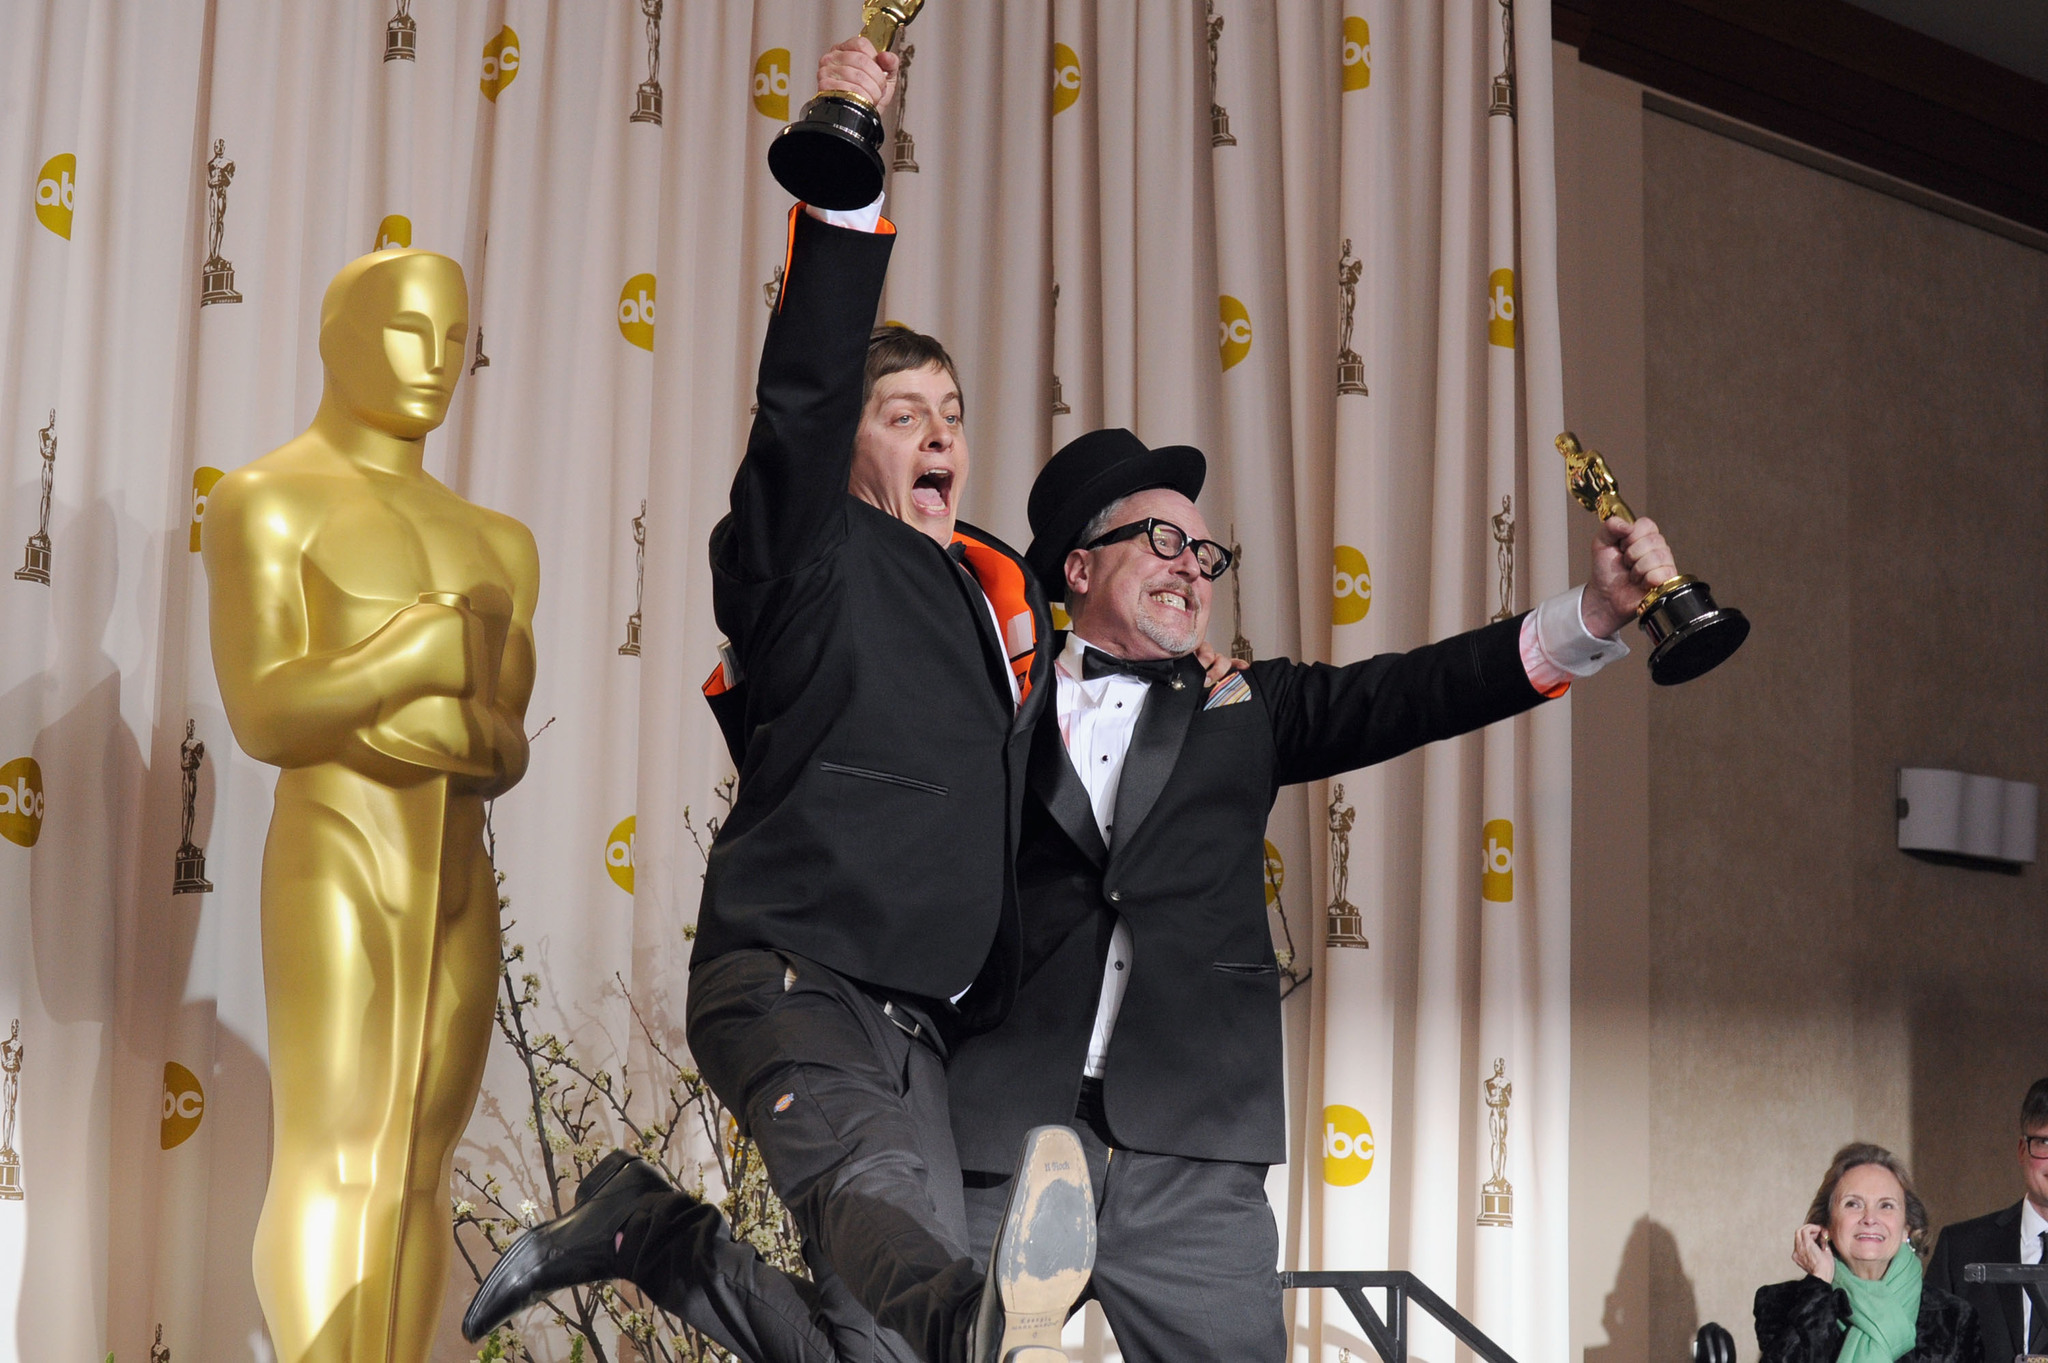 William Joyce and Brandon Oldenburg at an event for The 84th Annual Academy Awards (2012)